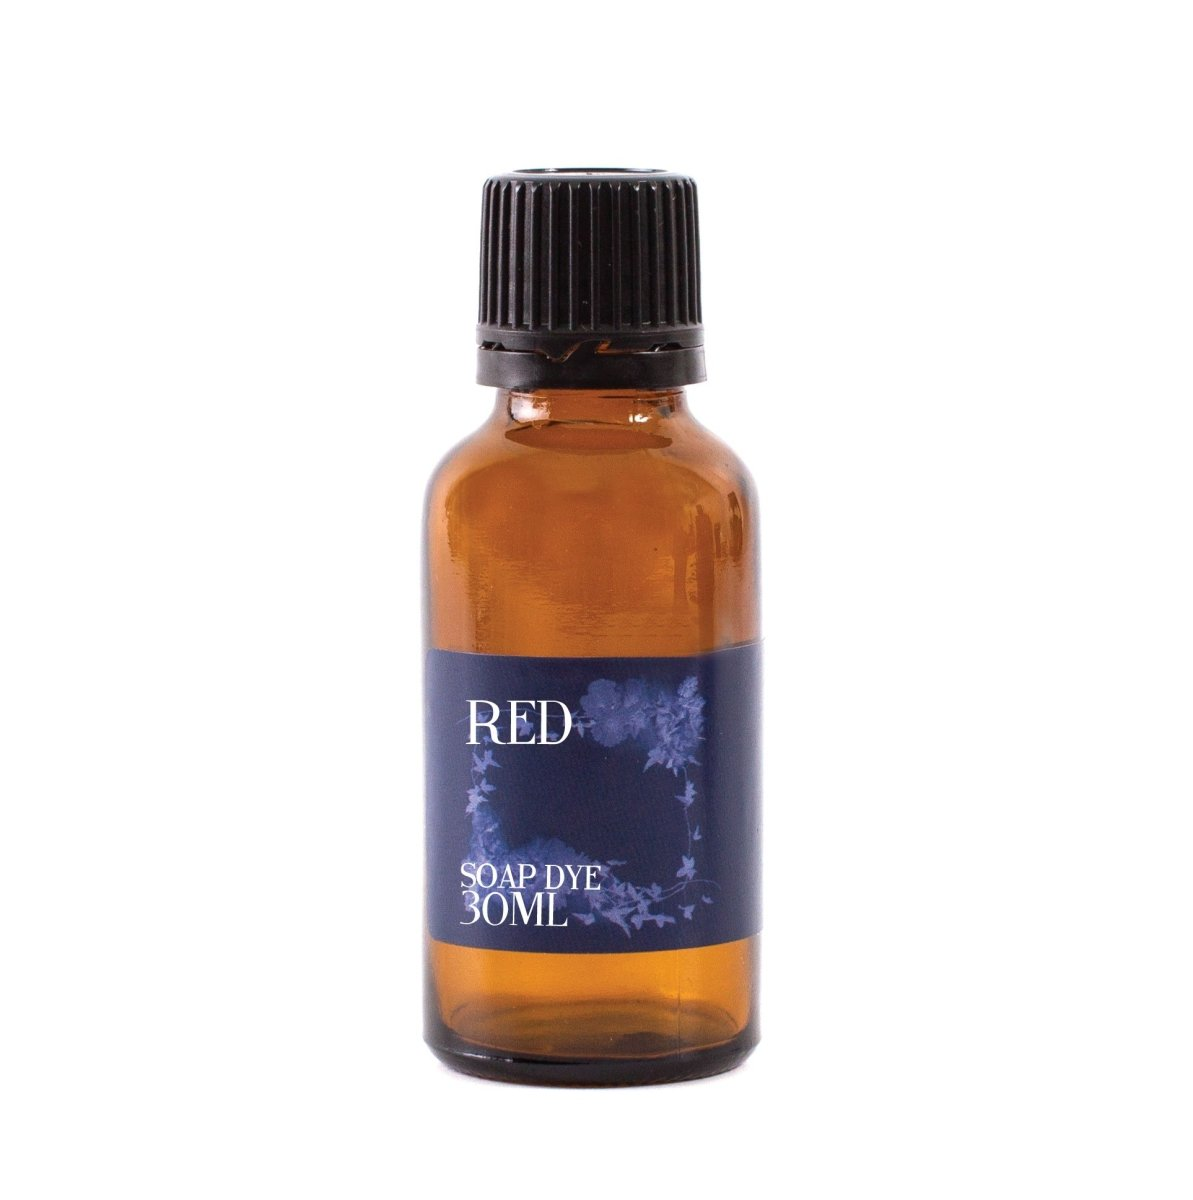 Red Soap Dye - Mystic Moments UK